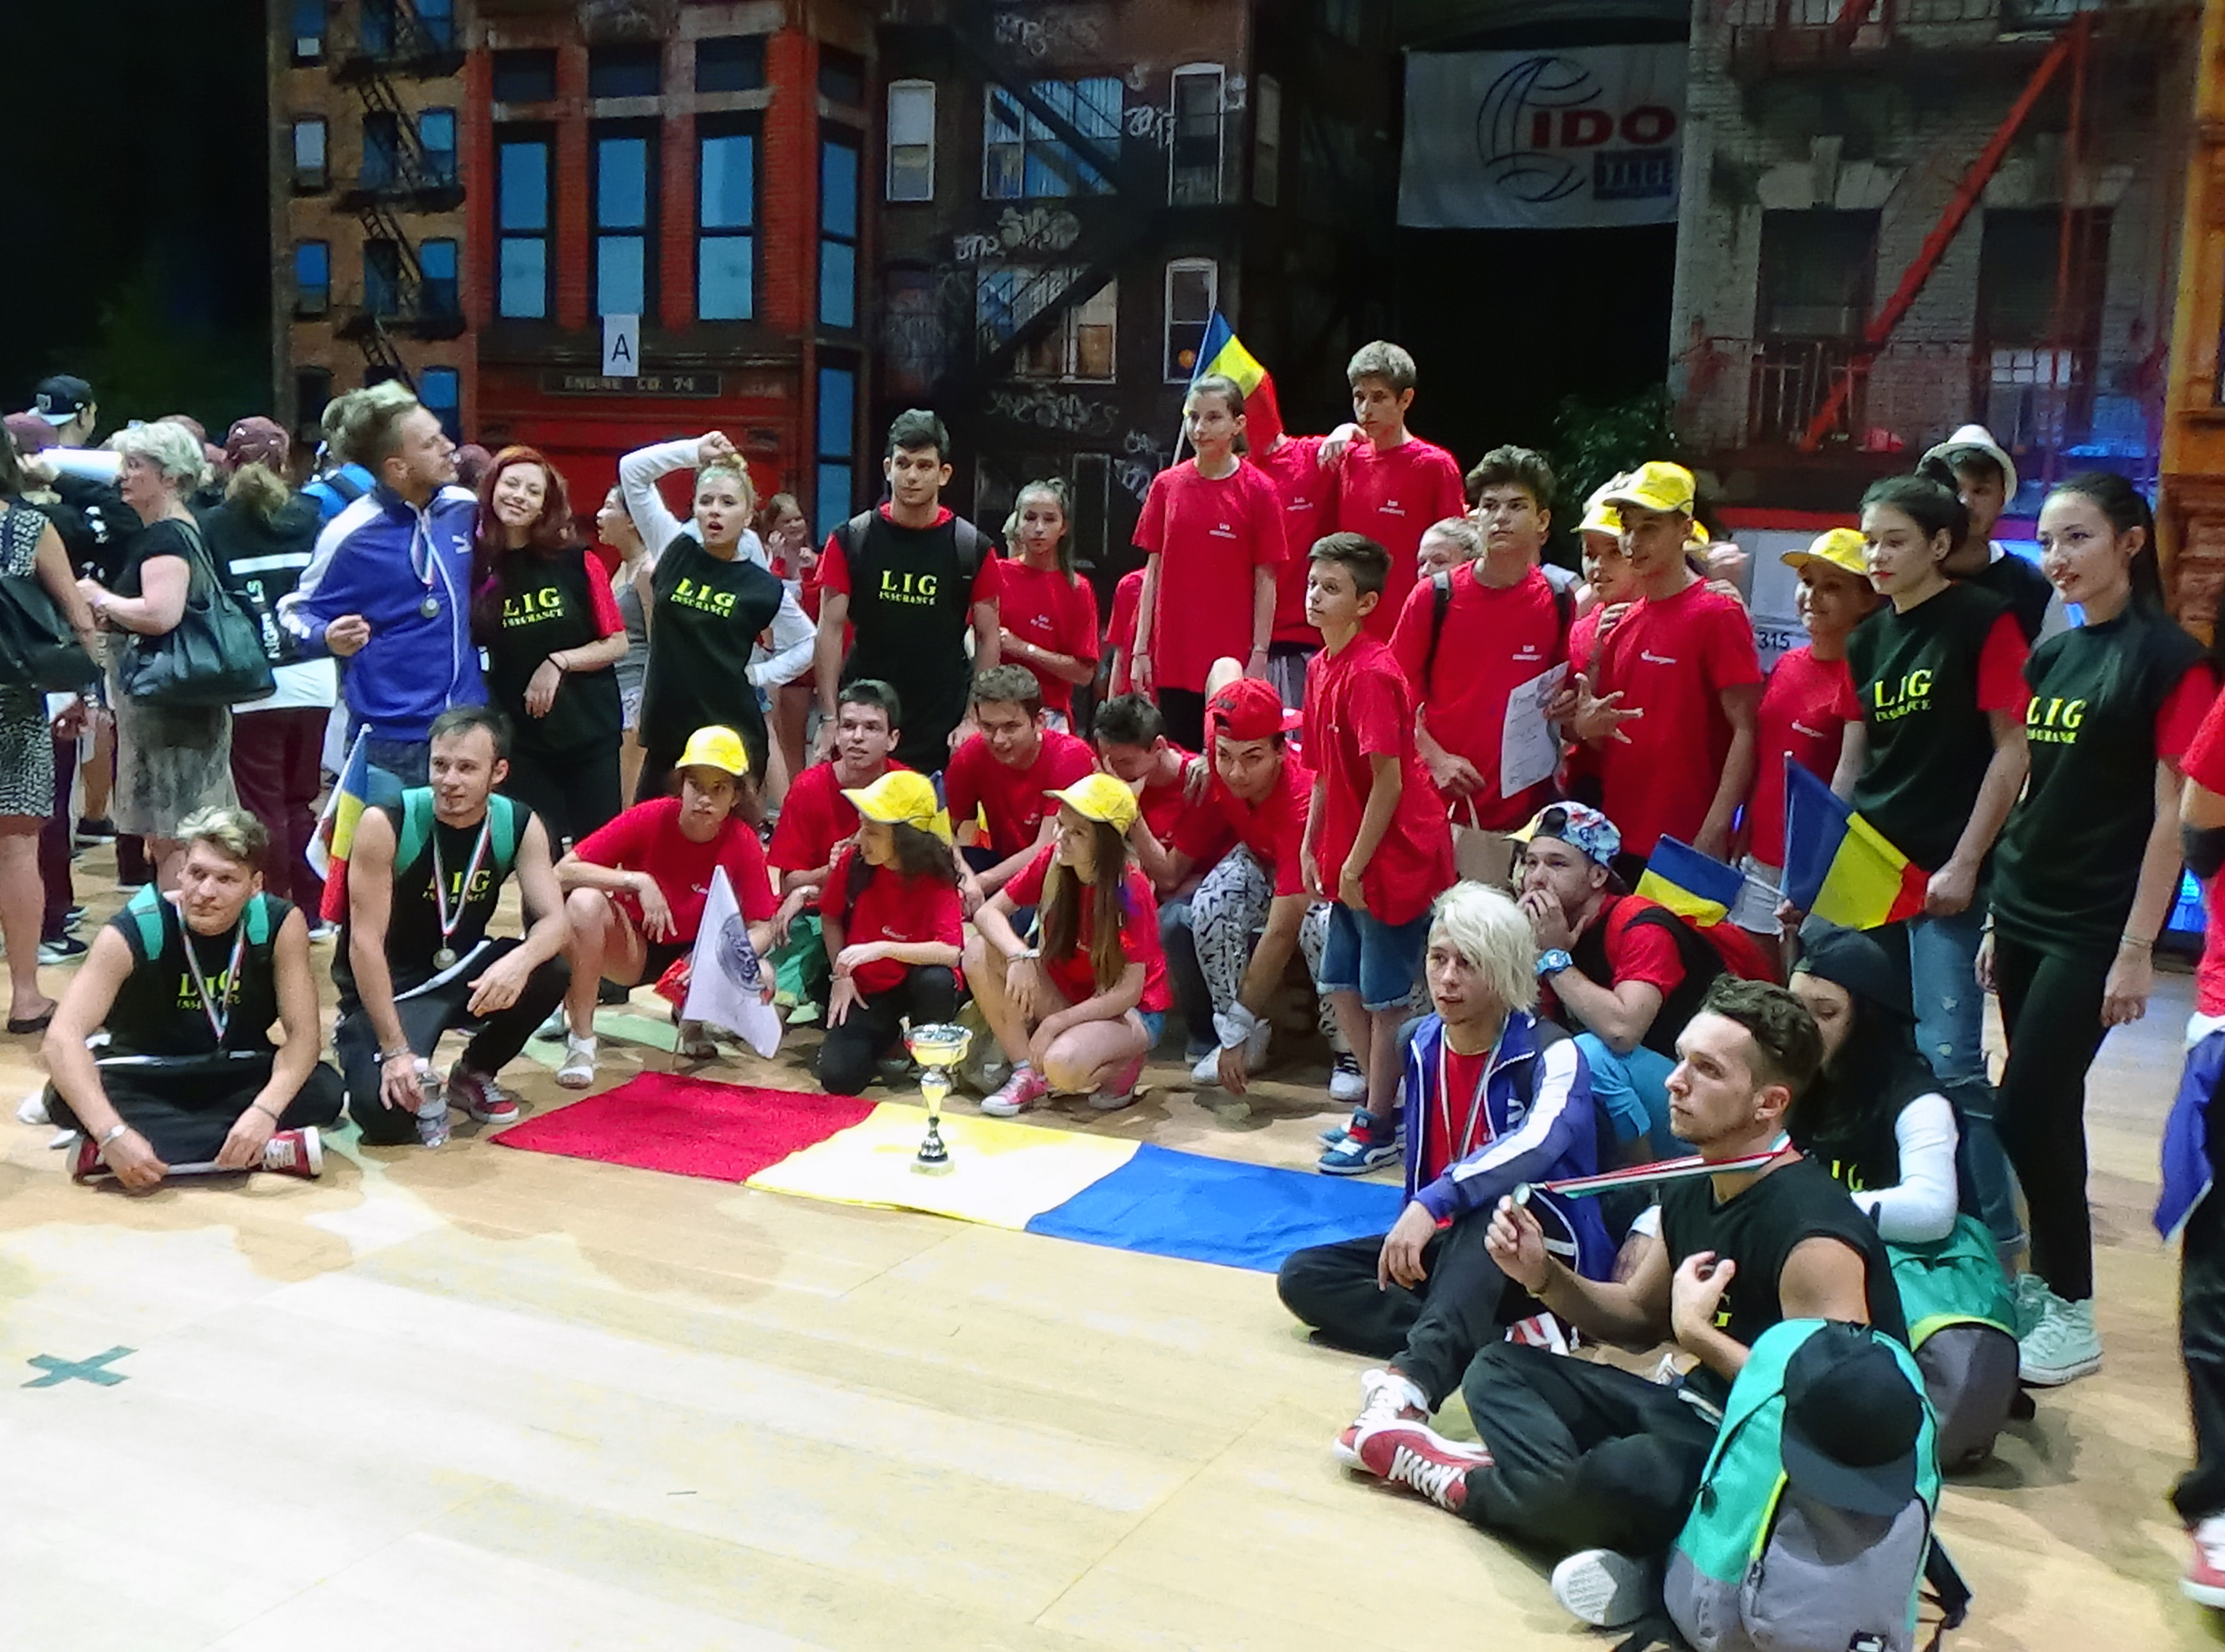 Trouble Crew - 3rd place IDO European Breakdance Champioship 2014 (7)